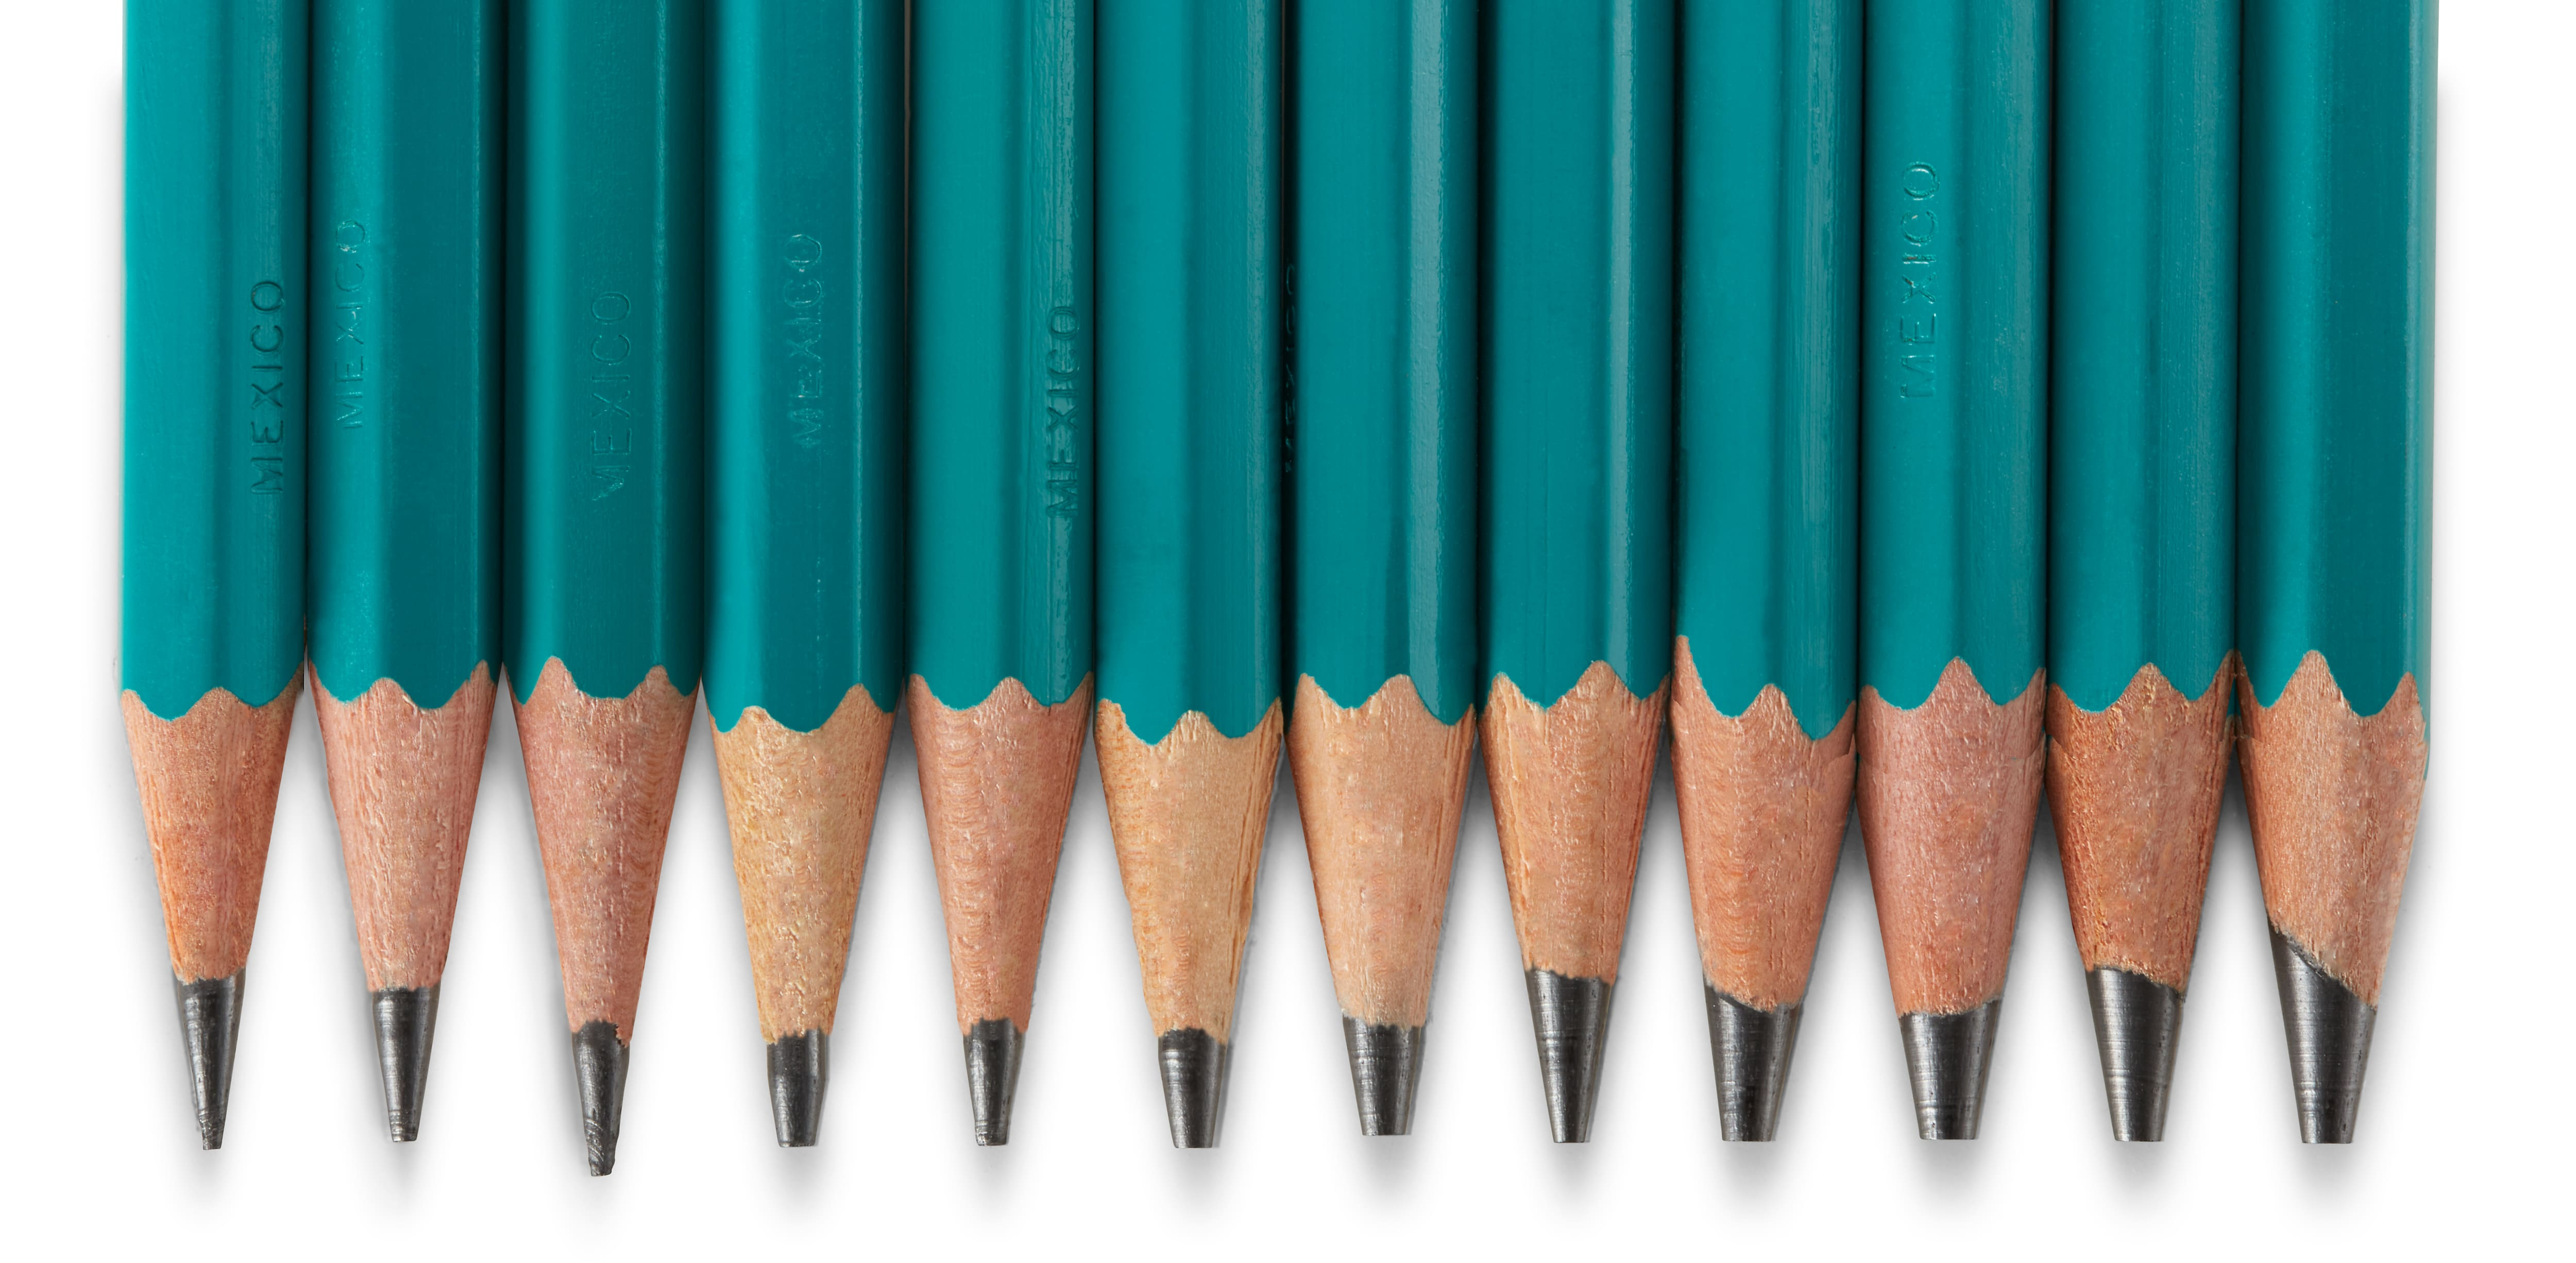 HB Prismacolor Premier Turquoise Graphite Drawing Pencil